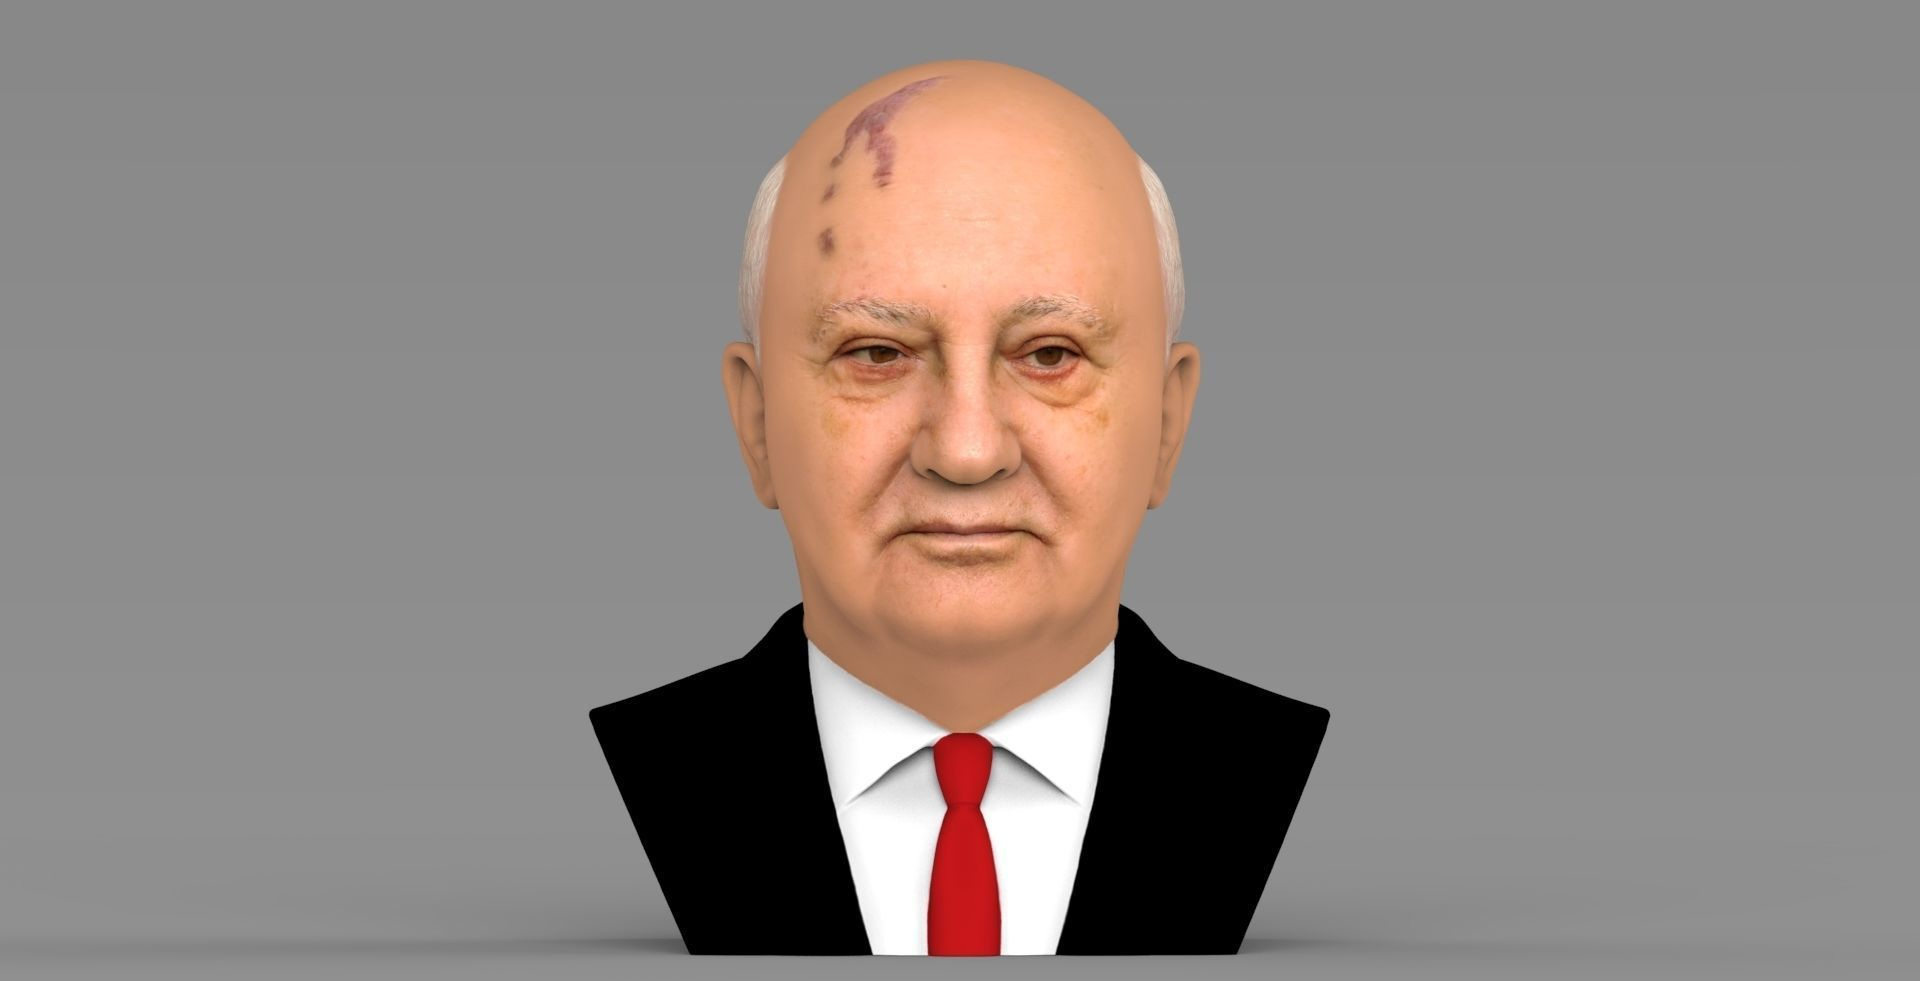 Mikhail Gorbachev bust ready for full color 3D printing